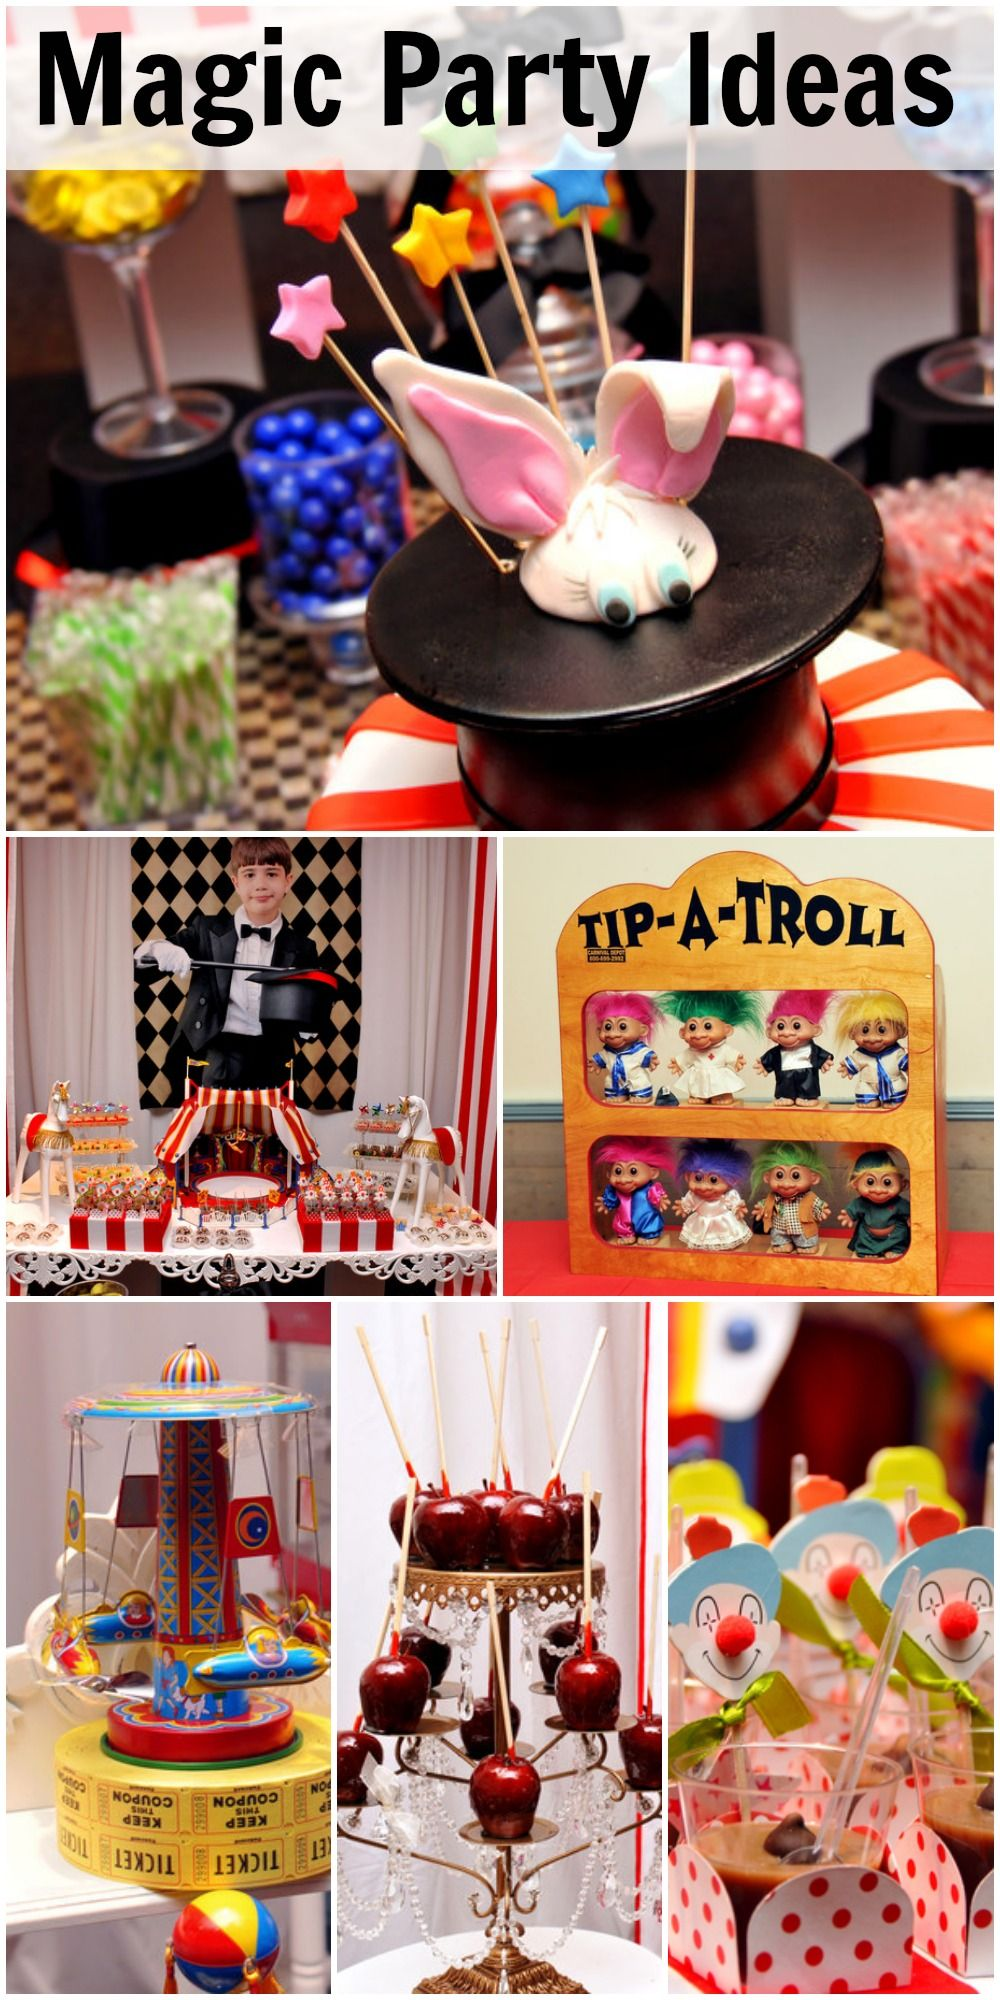 CarnivalCircus Birthday Circus Circus party Cake and Magic party